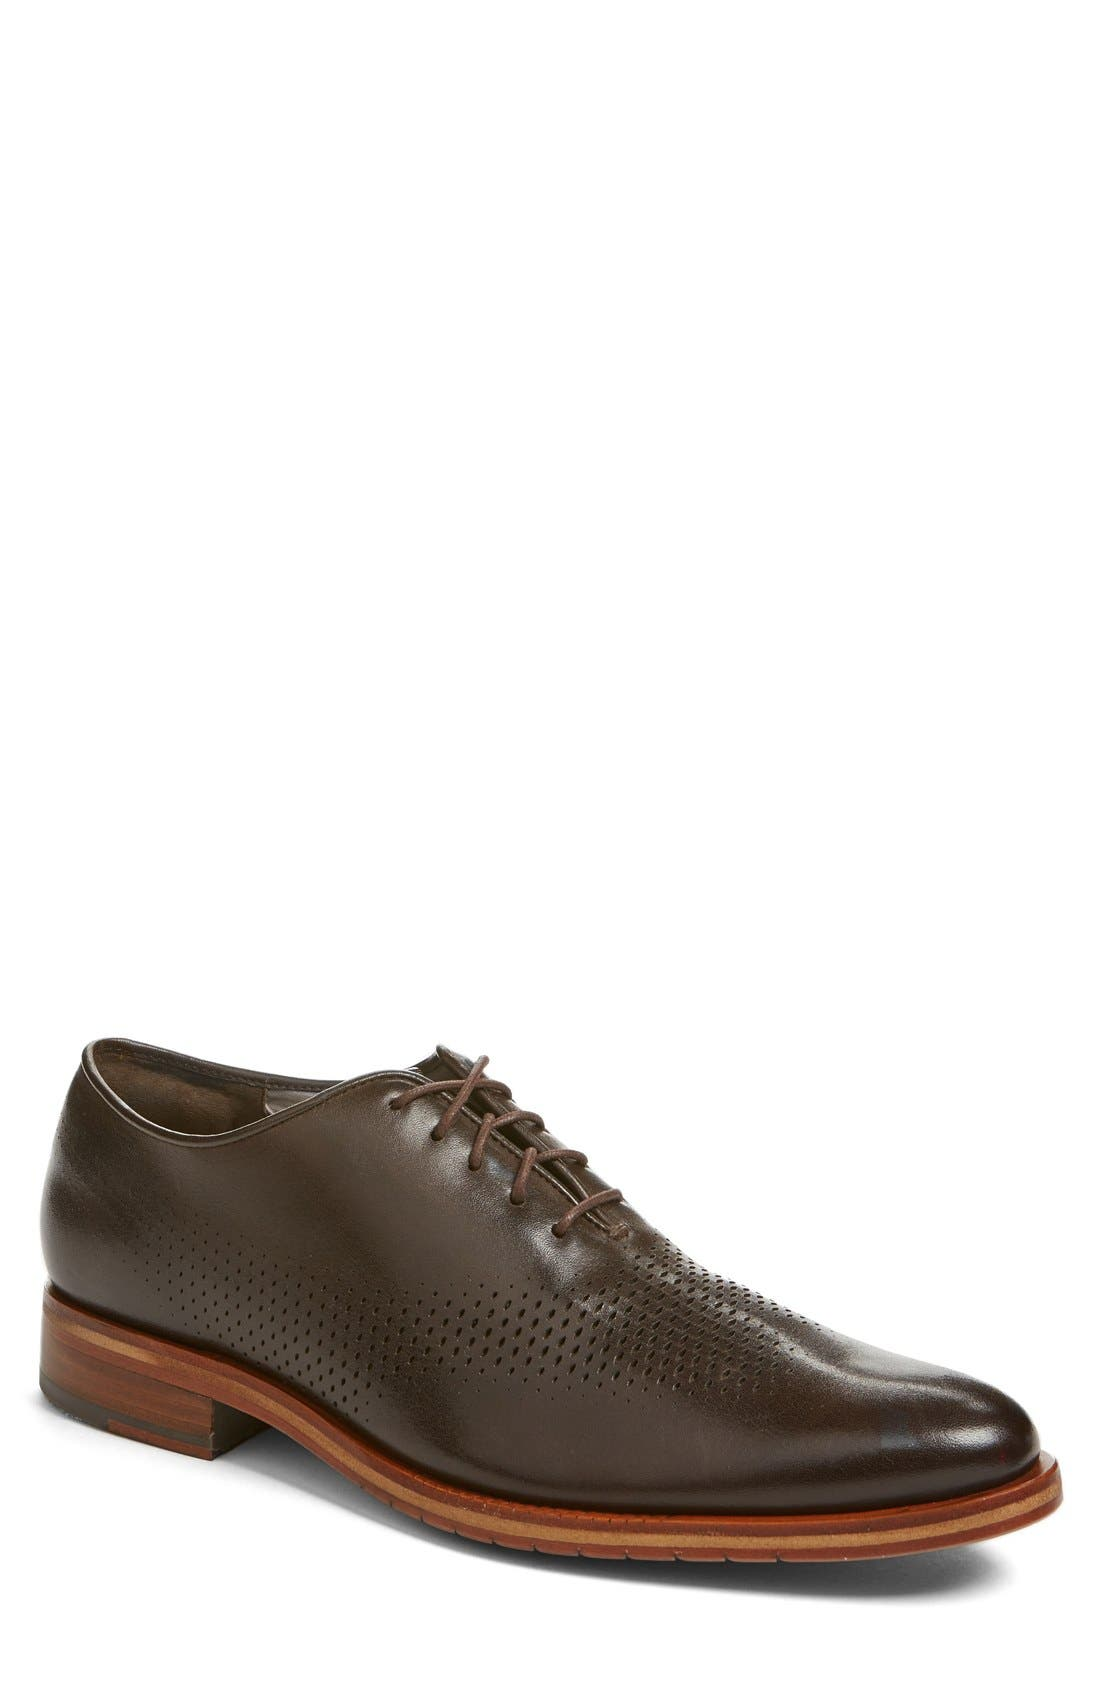 COLE HAAN 'Washington' Plain Toe Oxford